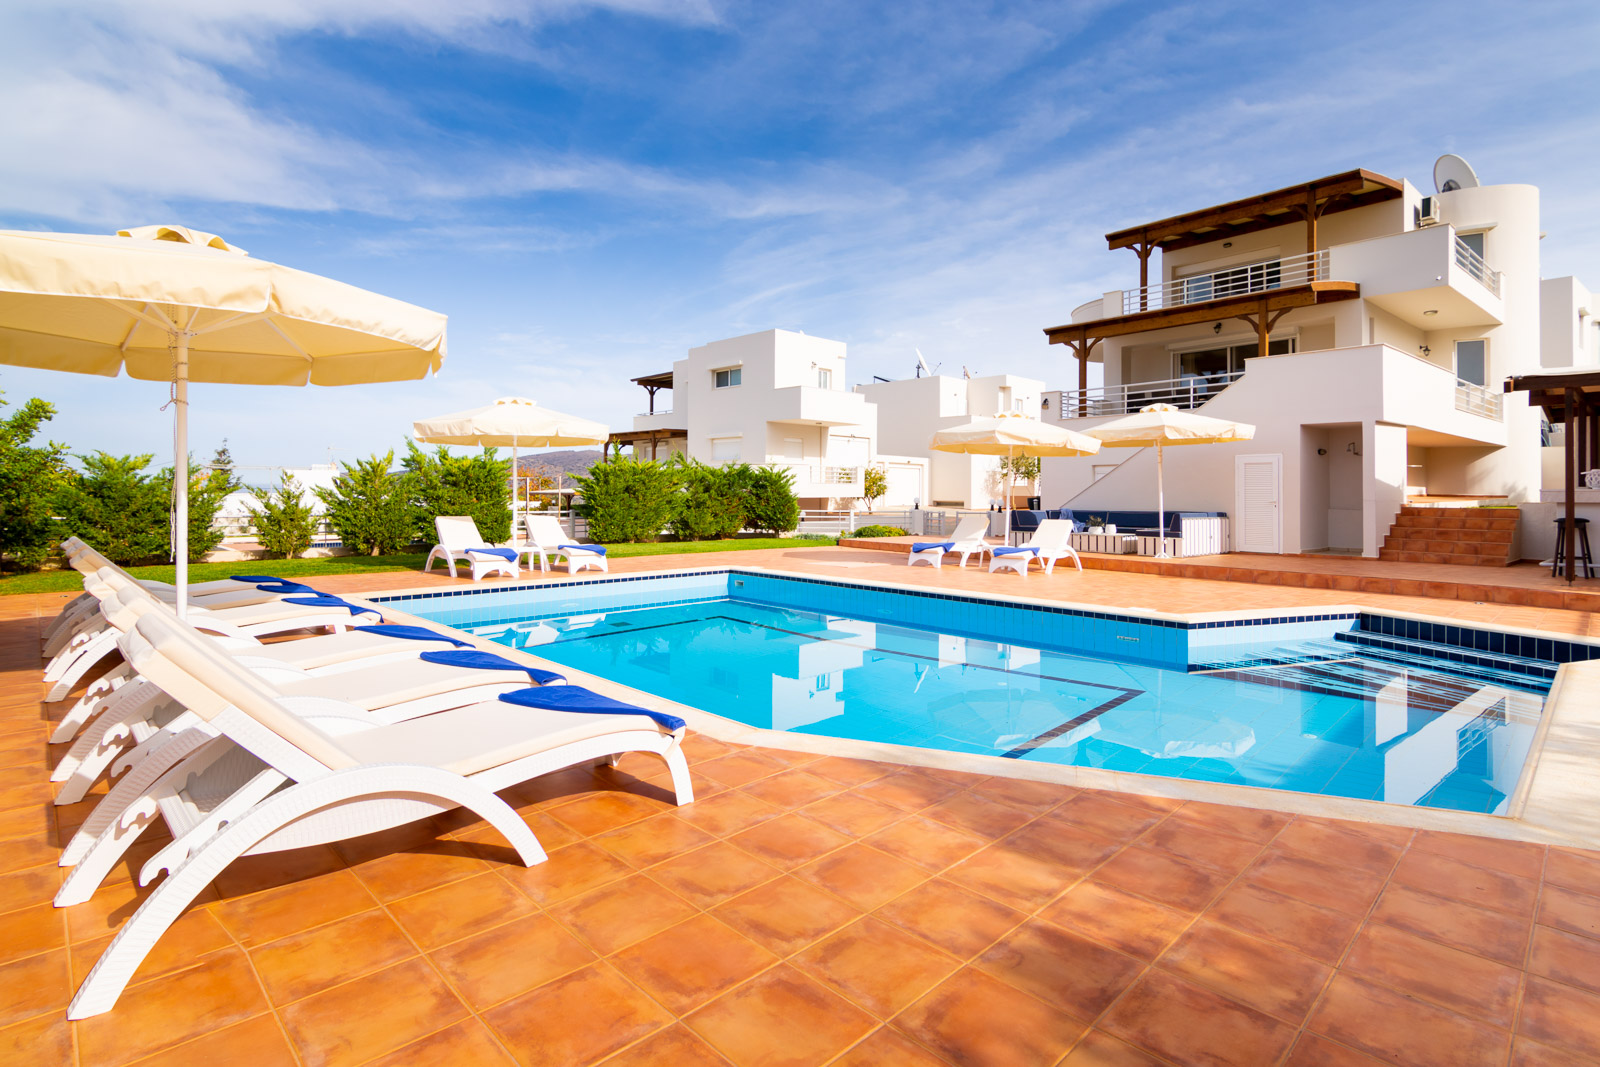 Two villas with private pools and gardens. Sold together